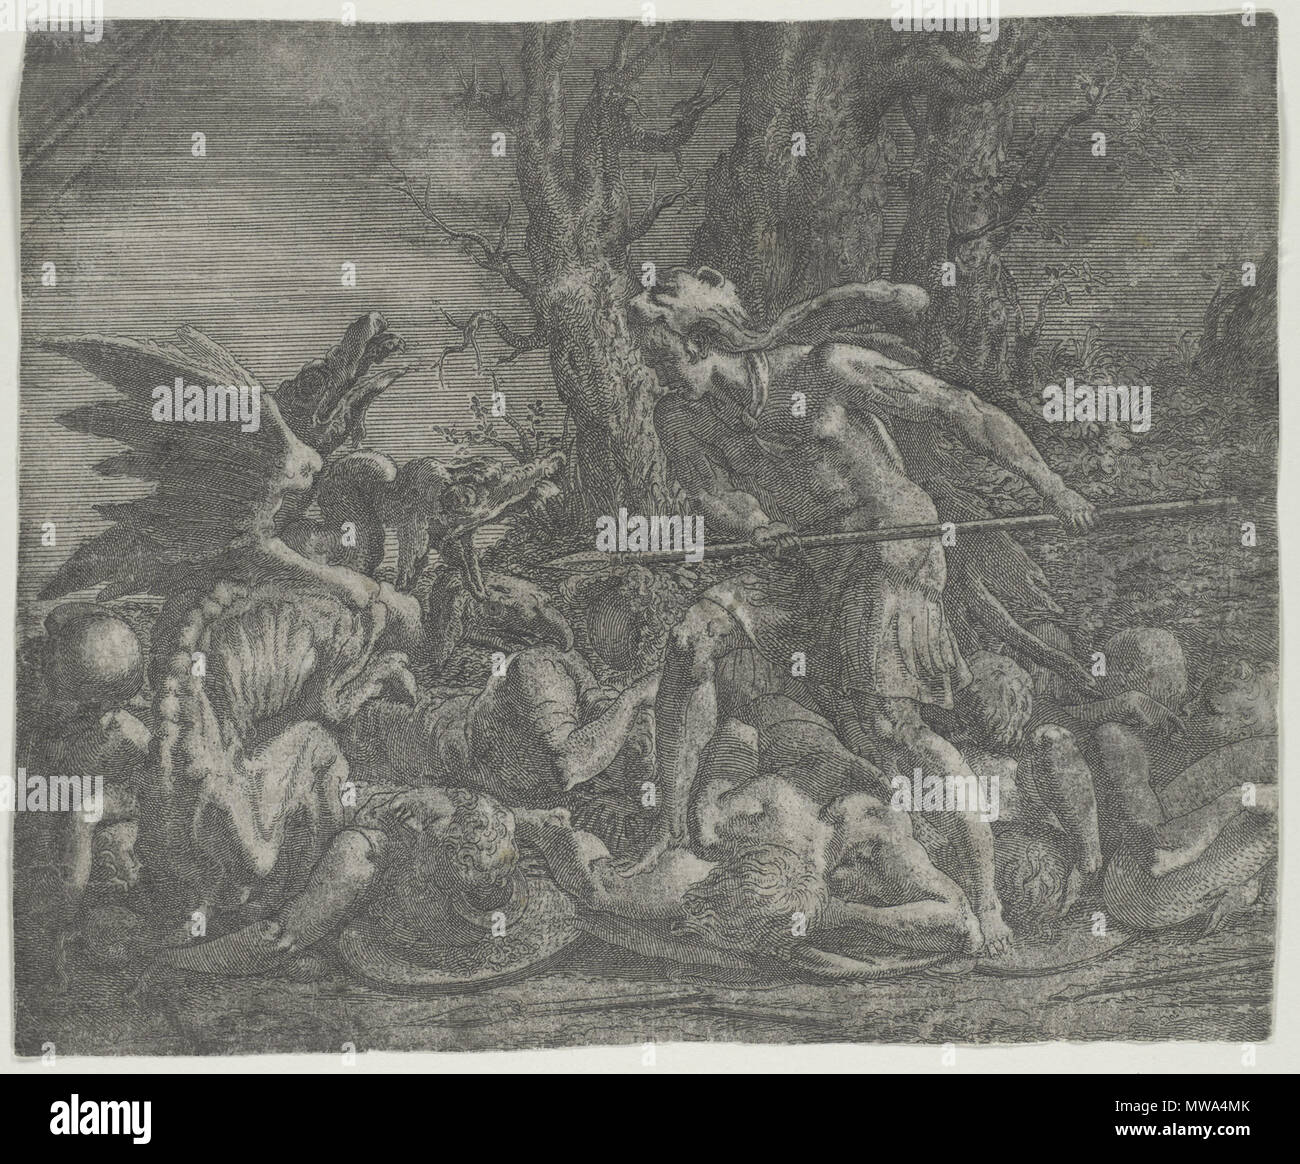 . English: Metropolitan Museum of Art Working Title/Artist: Cadmus Fighting the Dragon Who Had Killed His Men Department: Drawings & Prints Culture/Period/Location: HB/TOA Date Code: 08 Working Date: 1540-56 Digital Photo #: DP102821 . 21 February 2003, 14:21:33 (orig 1540s). Léon Davent - French printmaker in the mid 16th century 154 Davent Met - Stock Image